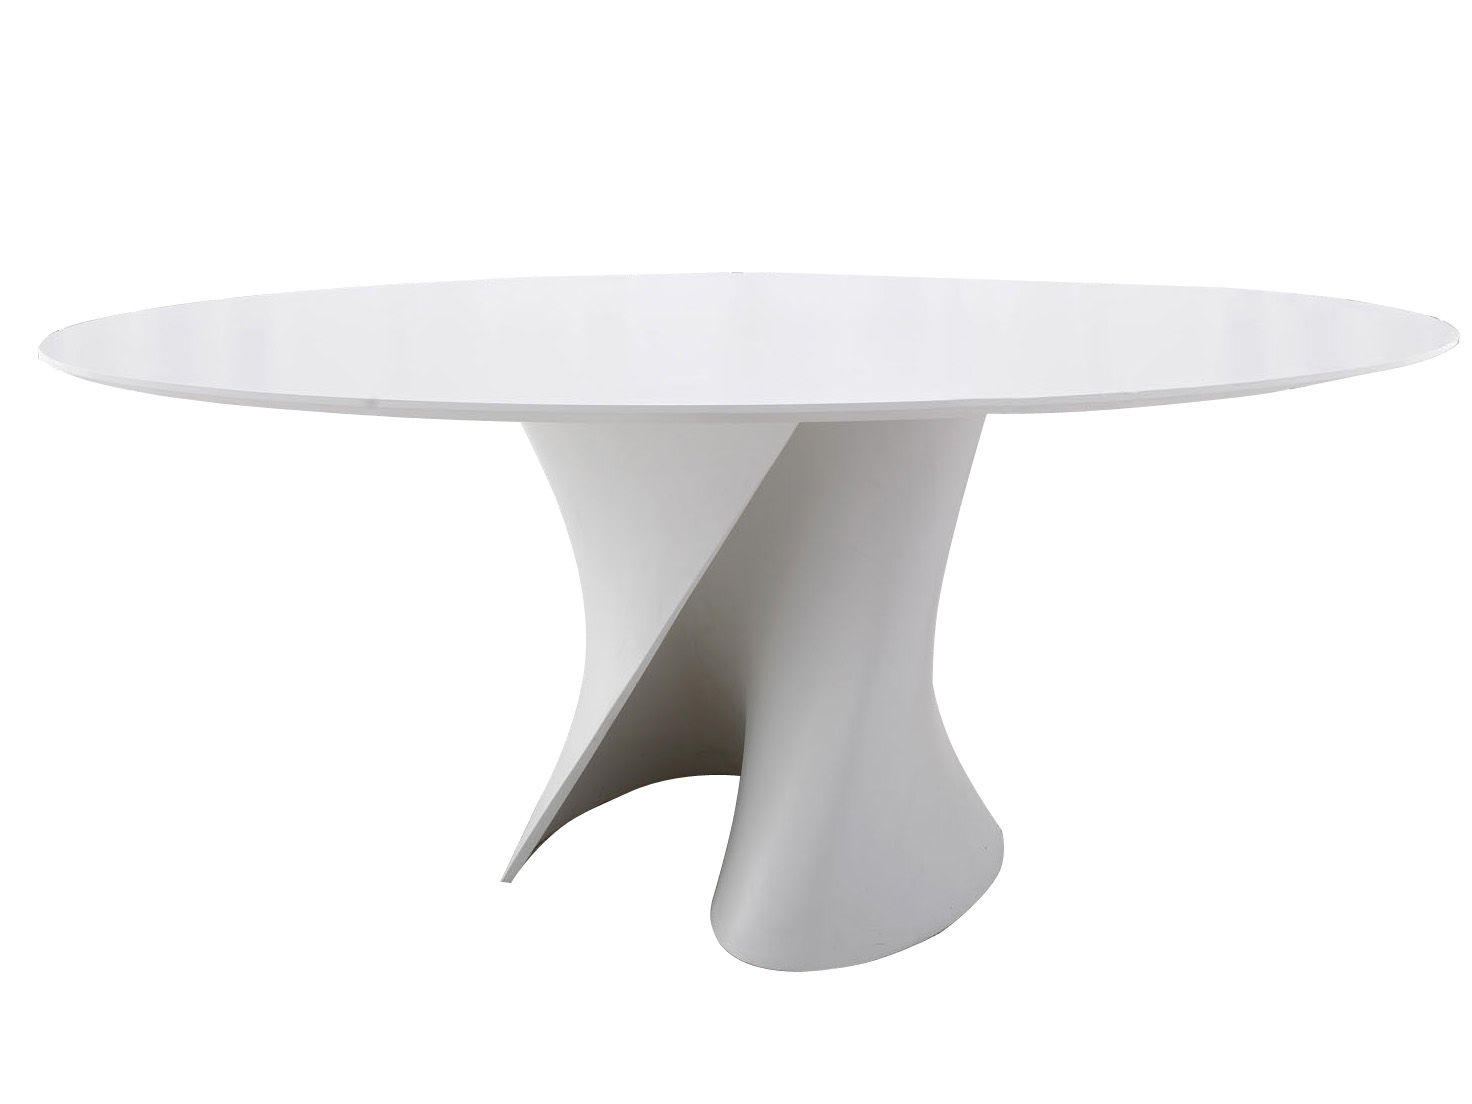 Furniture - Dining Tables - S Ovale Round table - Oval 150 x 210 cm by MDF Italia - White resin top / White leg - Cristalplant